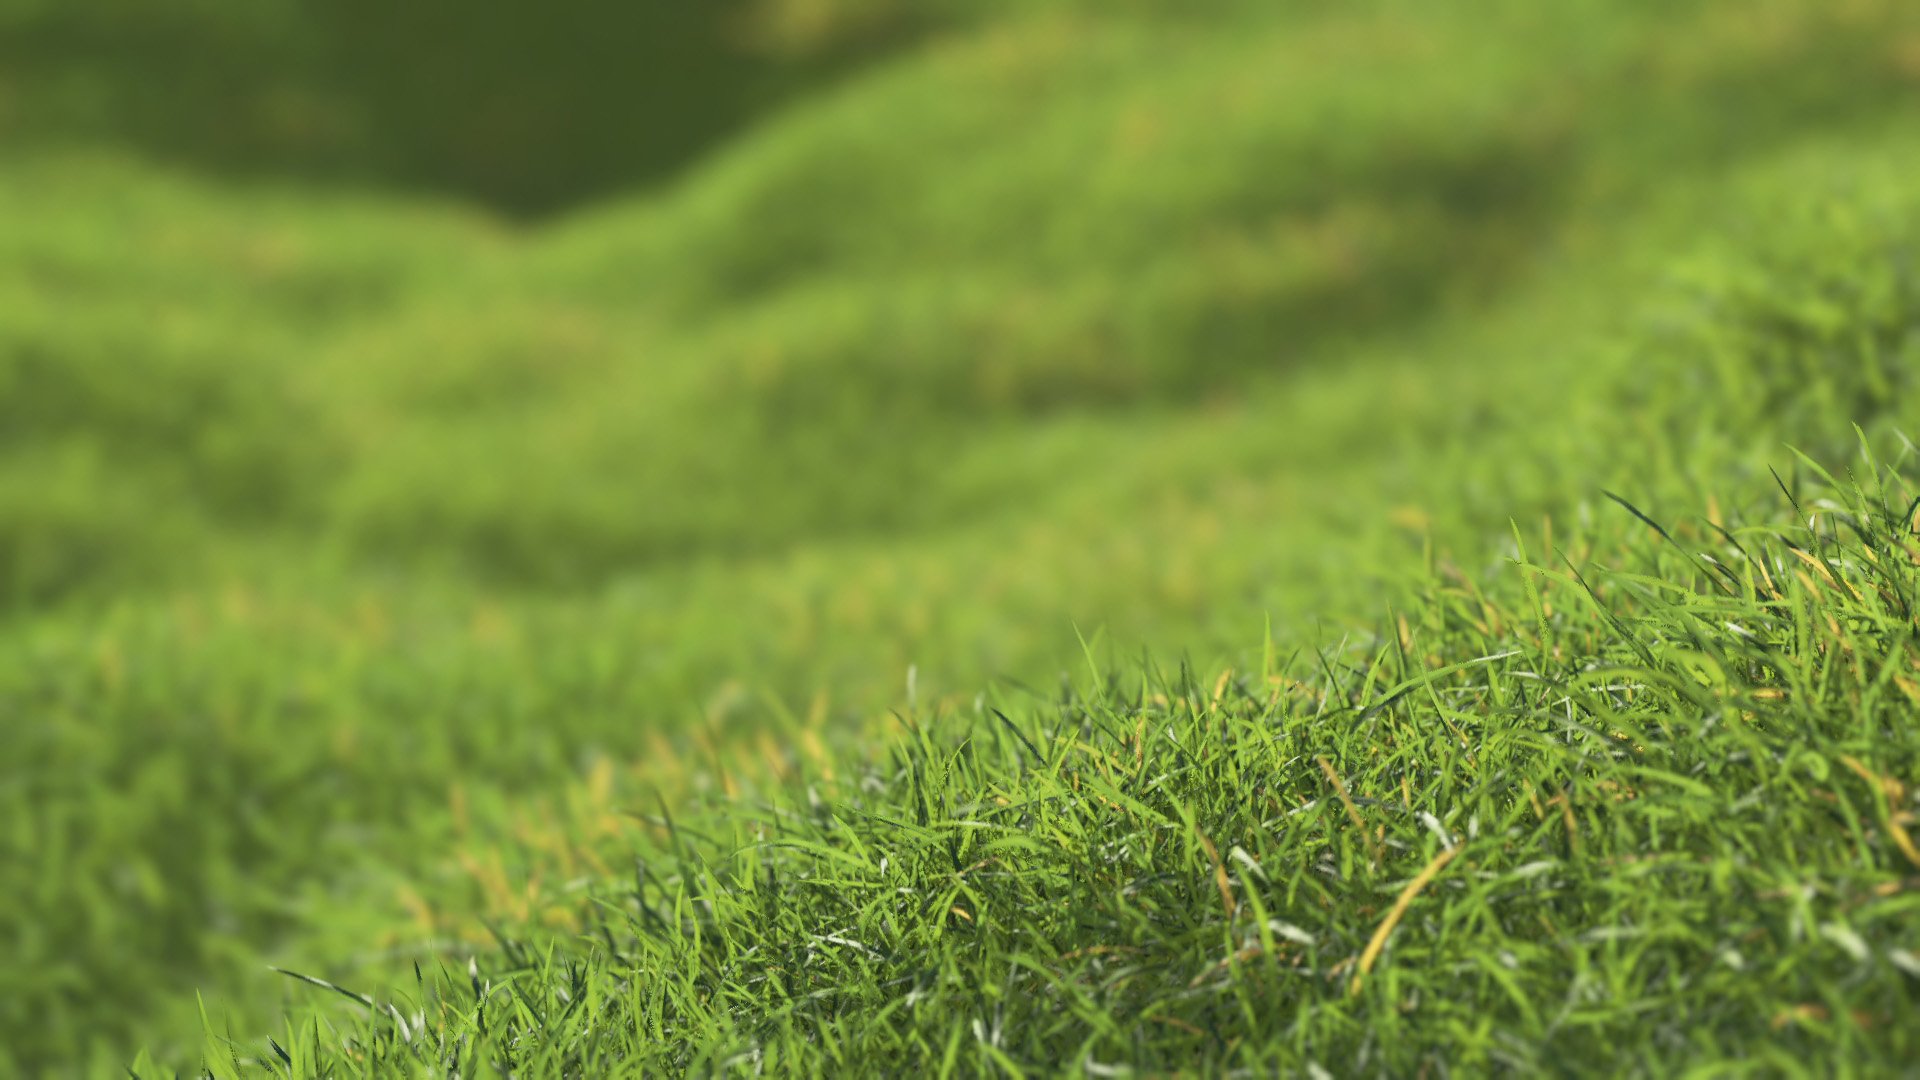 3D model of the Generic grass and lawn engine Generic grass lawn close-up